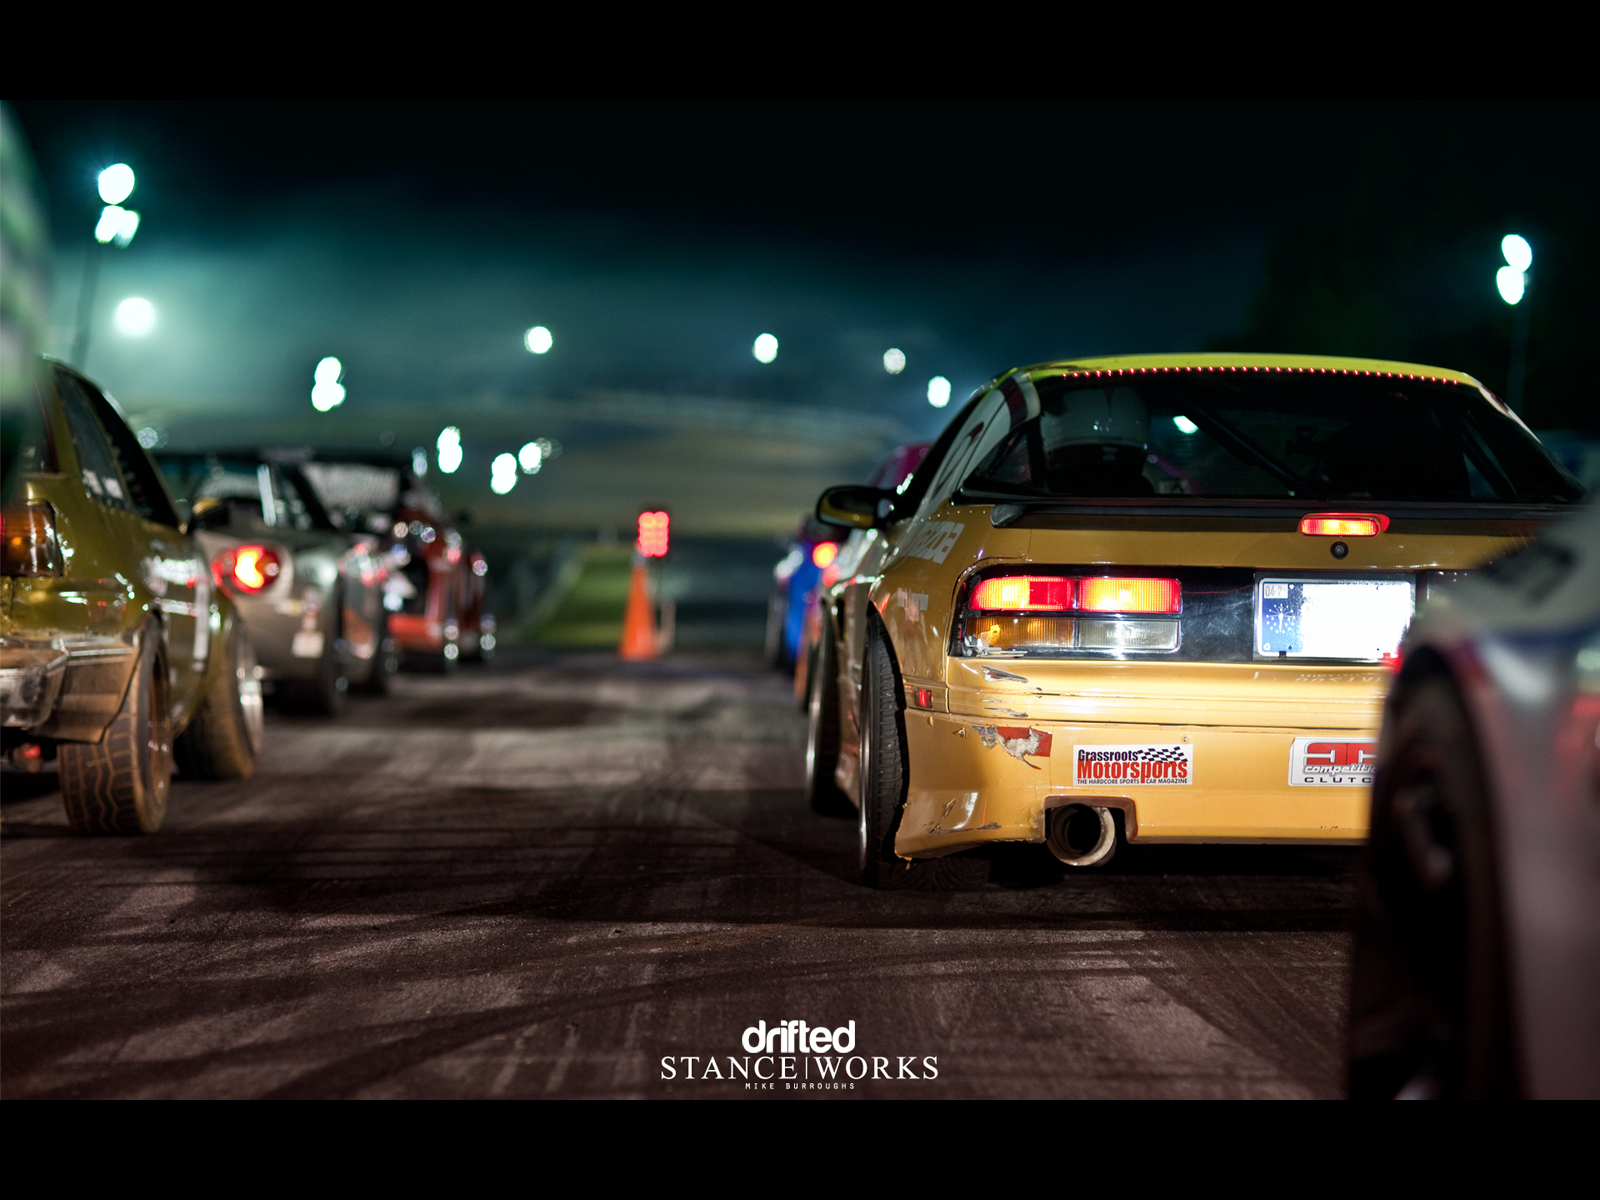 Desktops Stanceworks X Drifted At Formula Drift Atlanta